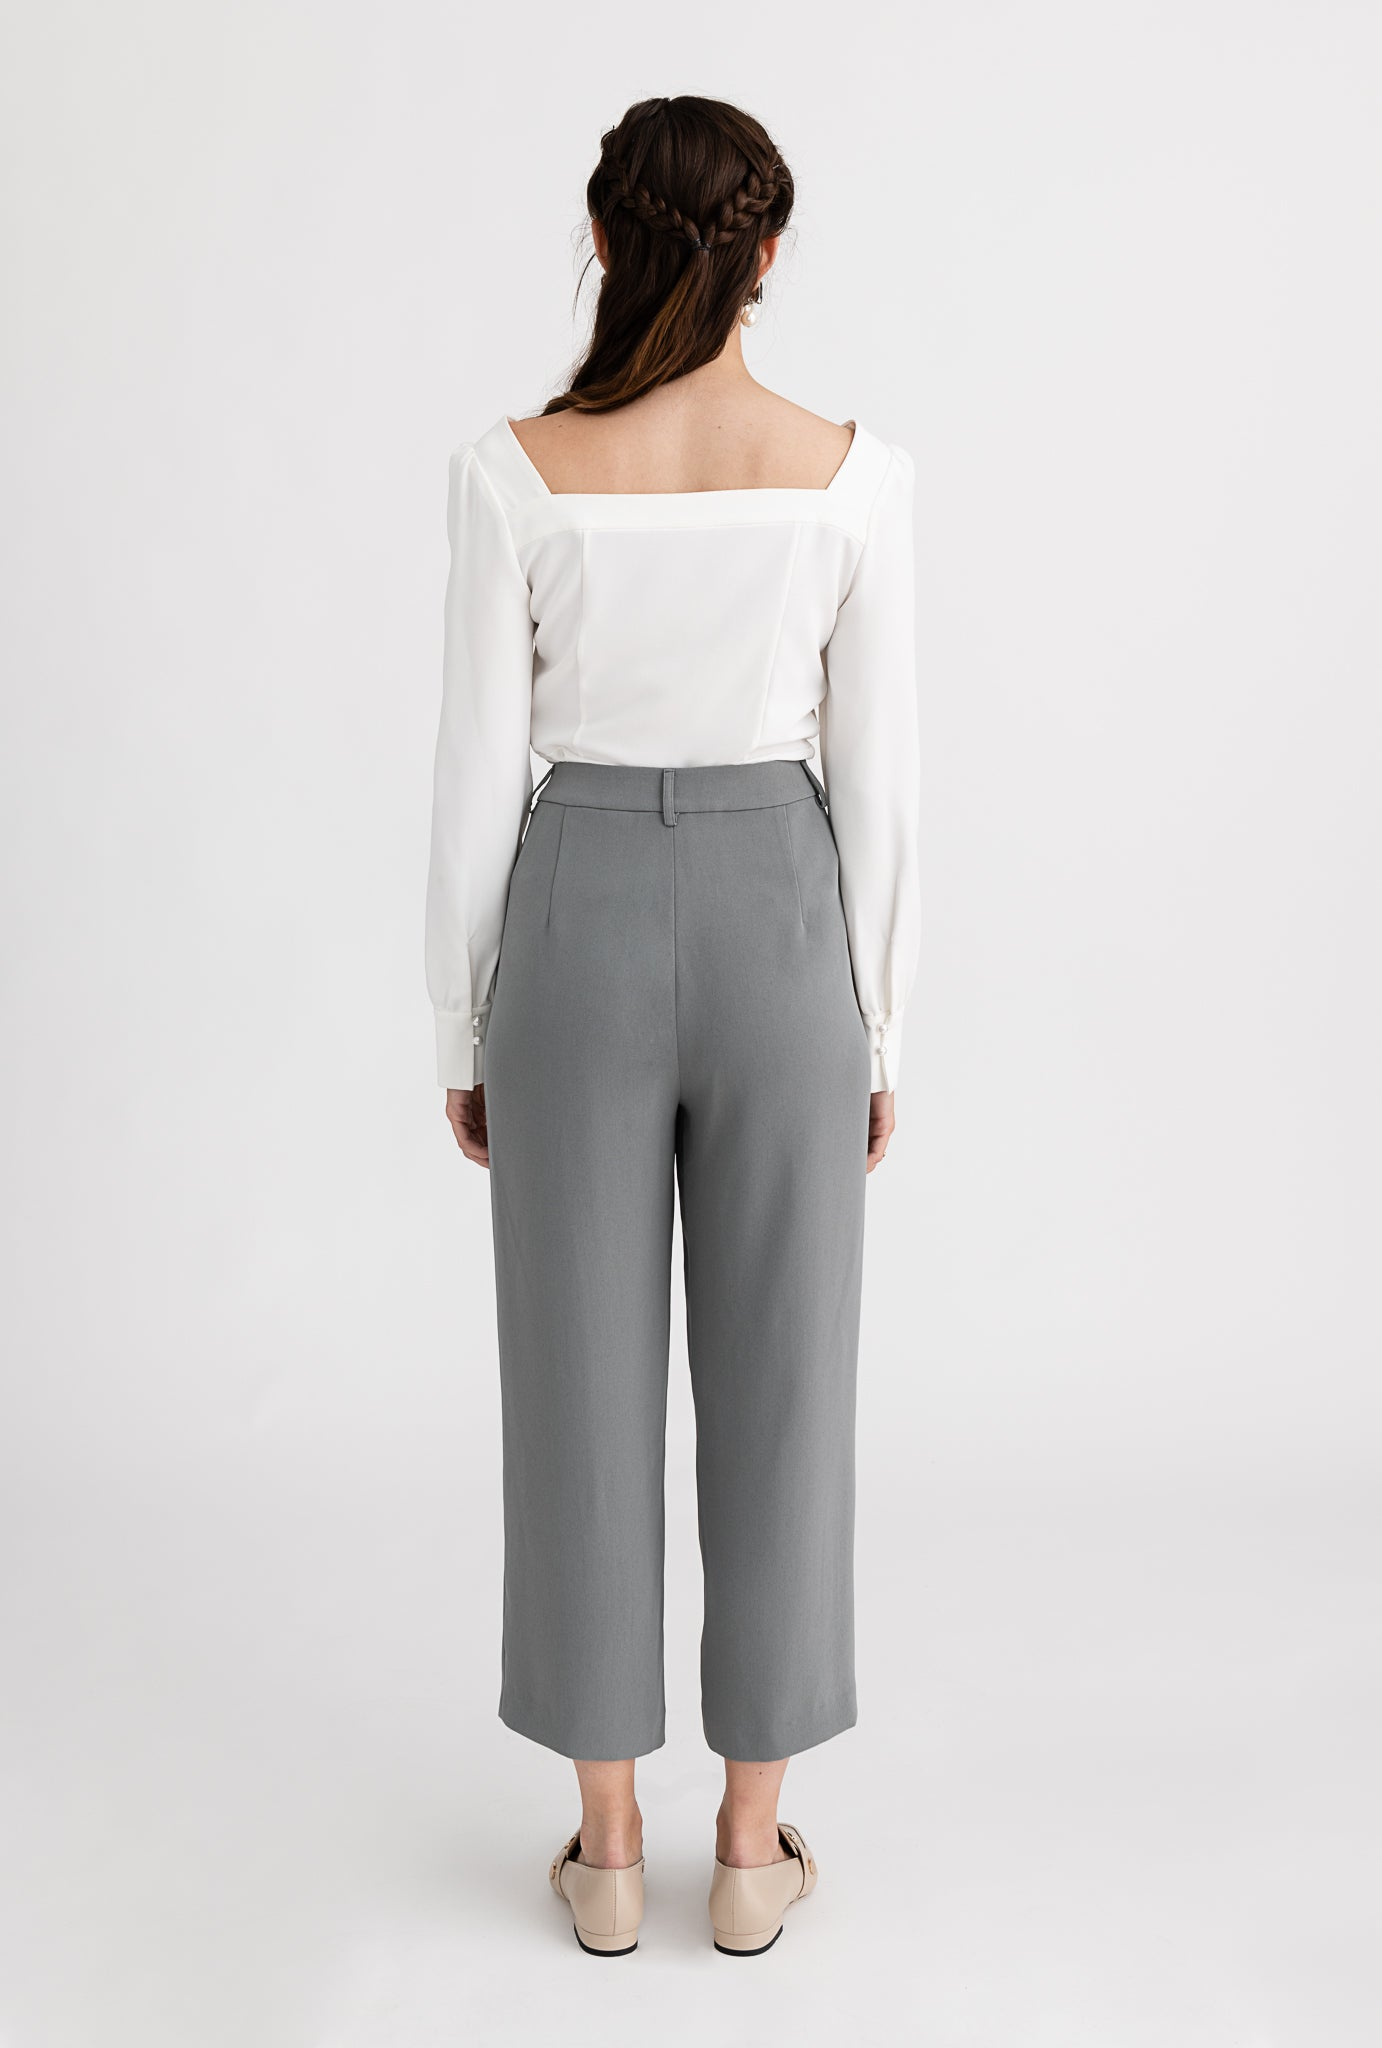 Belda Pants - Steel- Pearl detailed high-waist straight fit suit pants - Petite Studio NYC